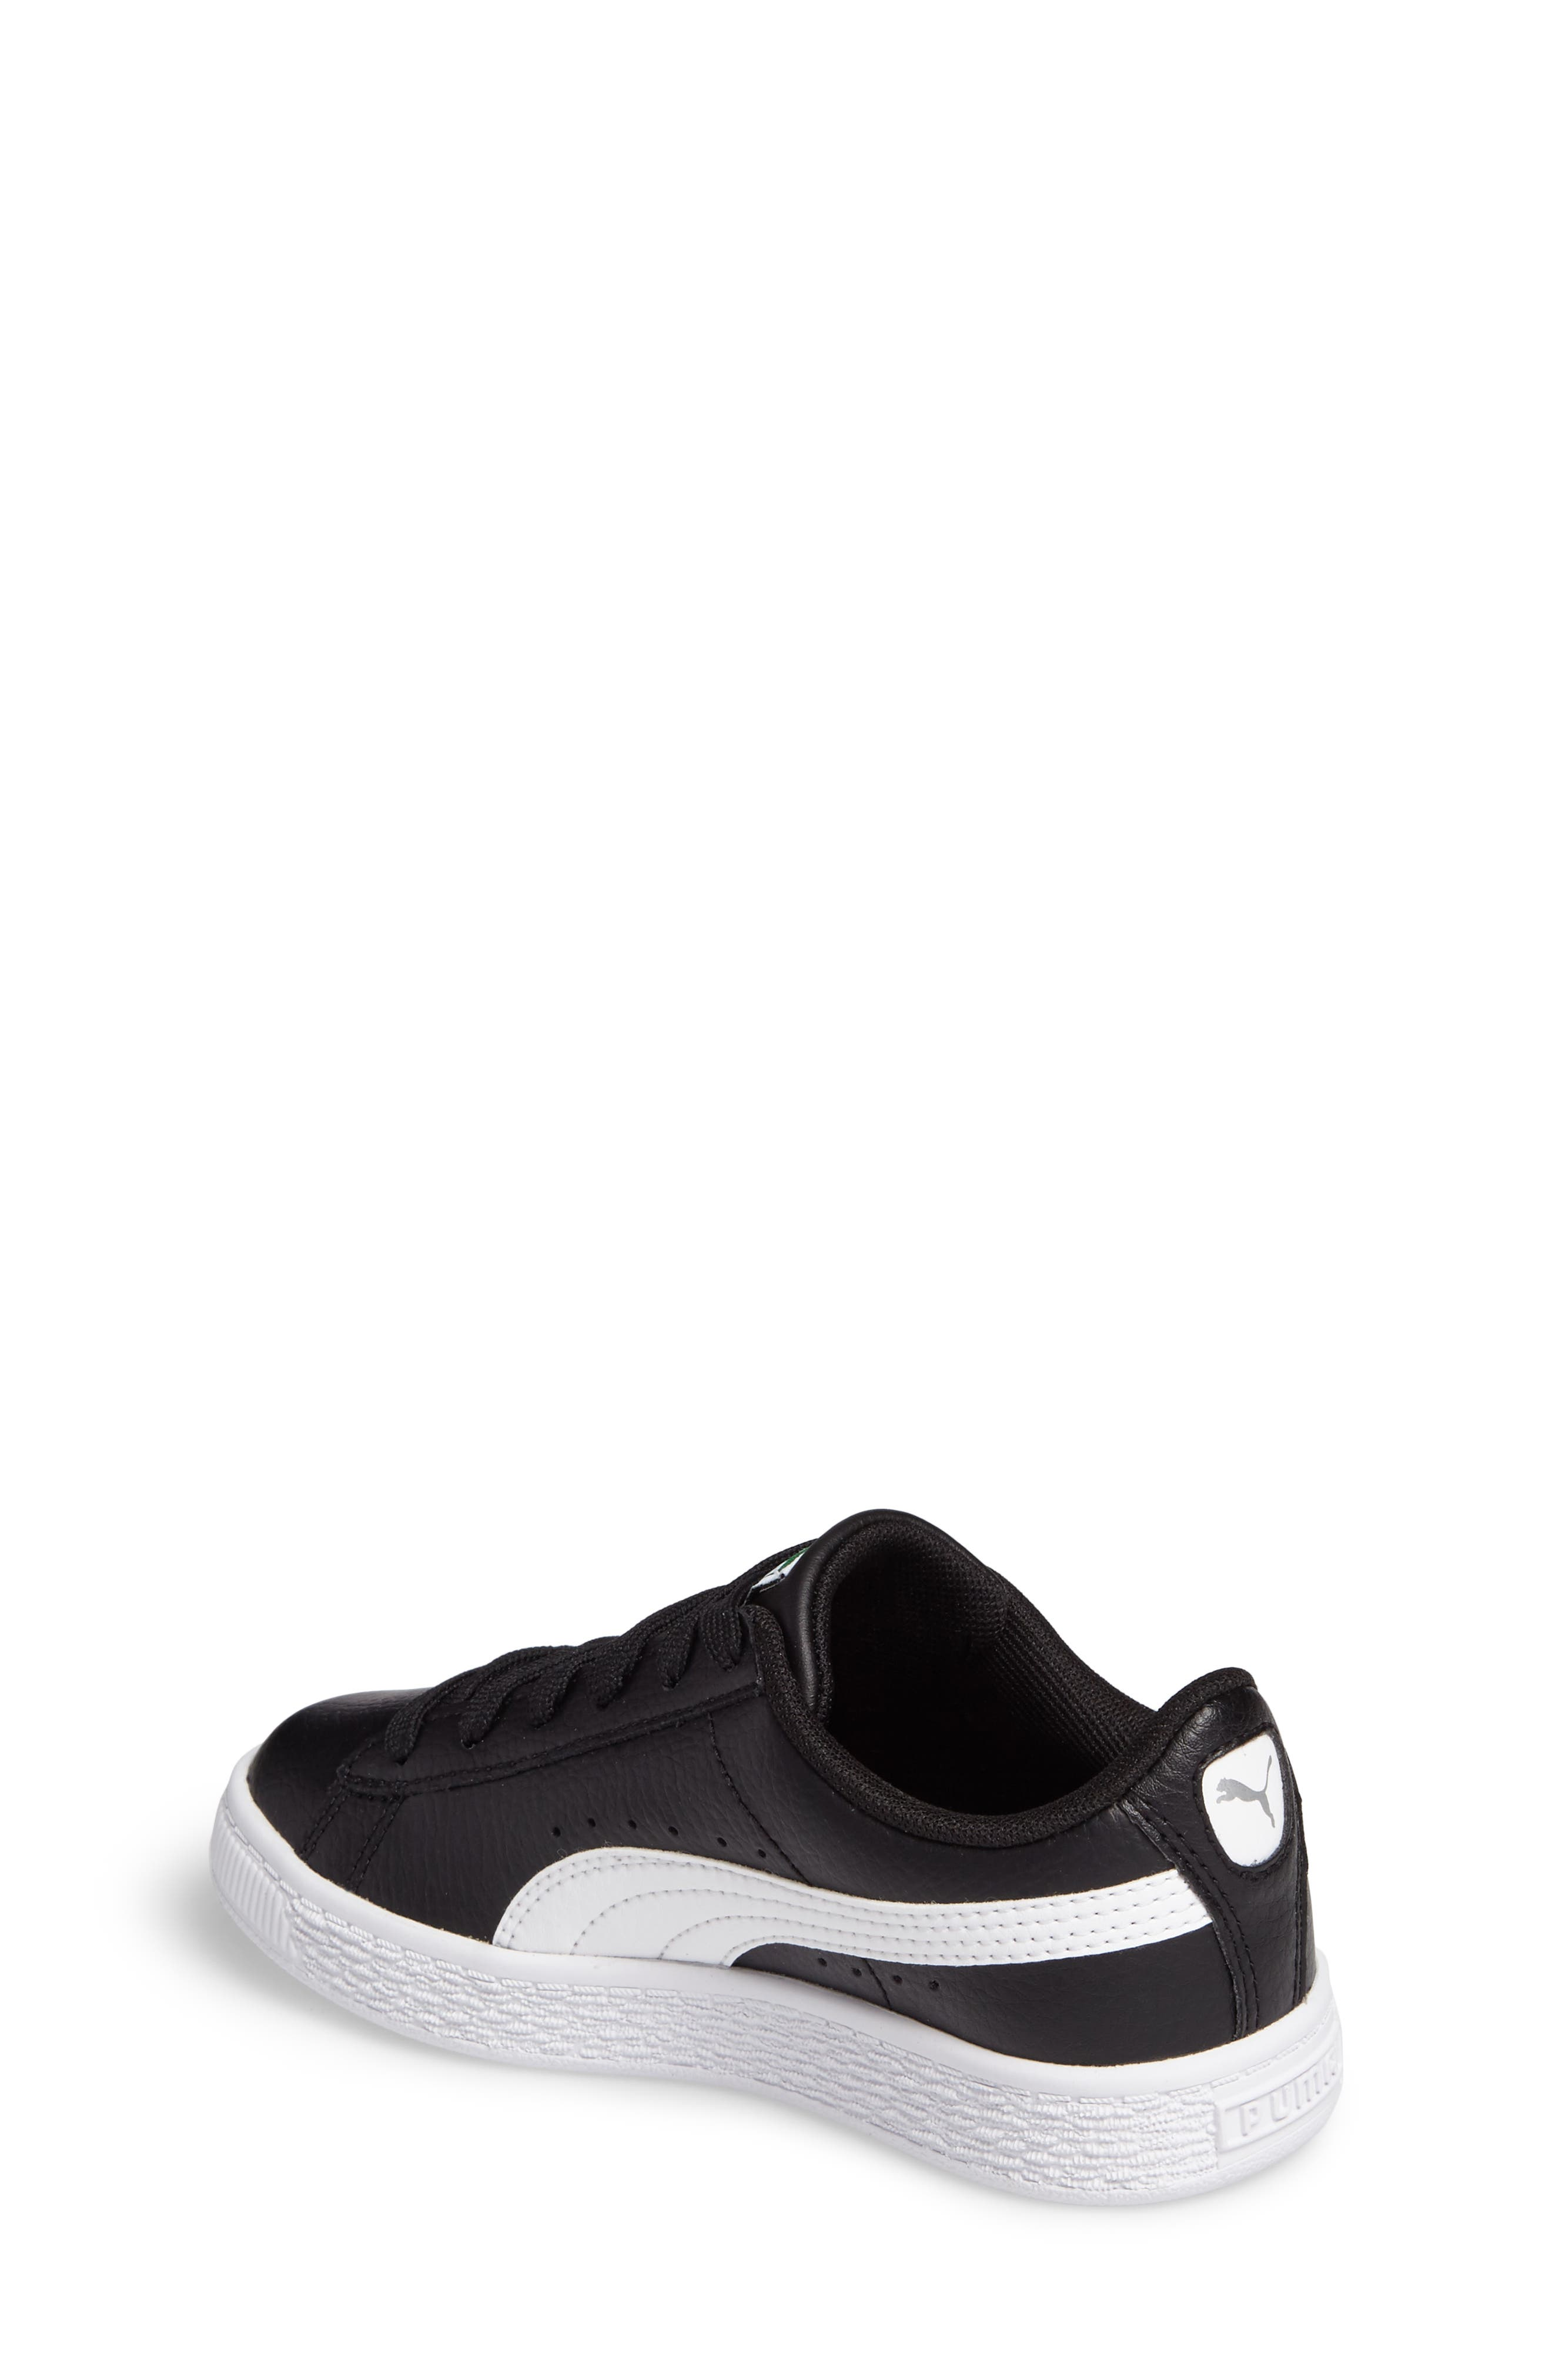 Basket Classic PS Sneaker,                             Alternate thumbnail 2, color,                             001